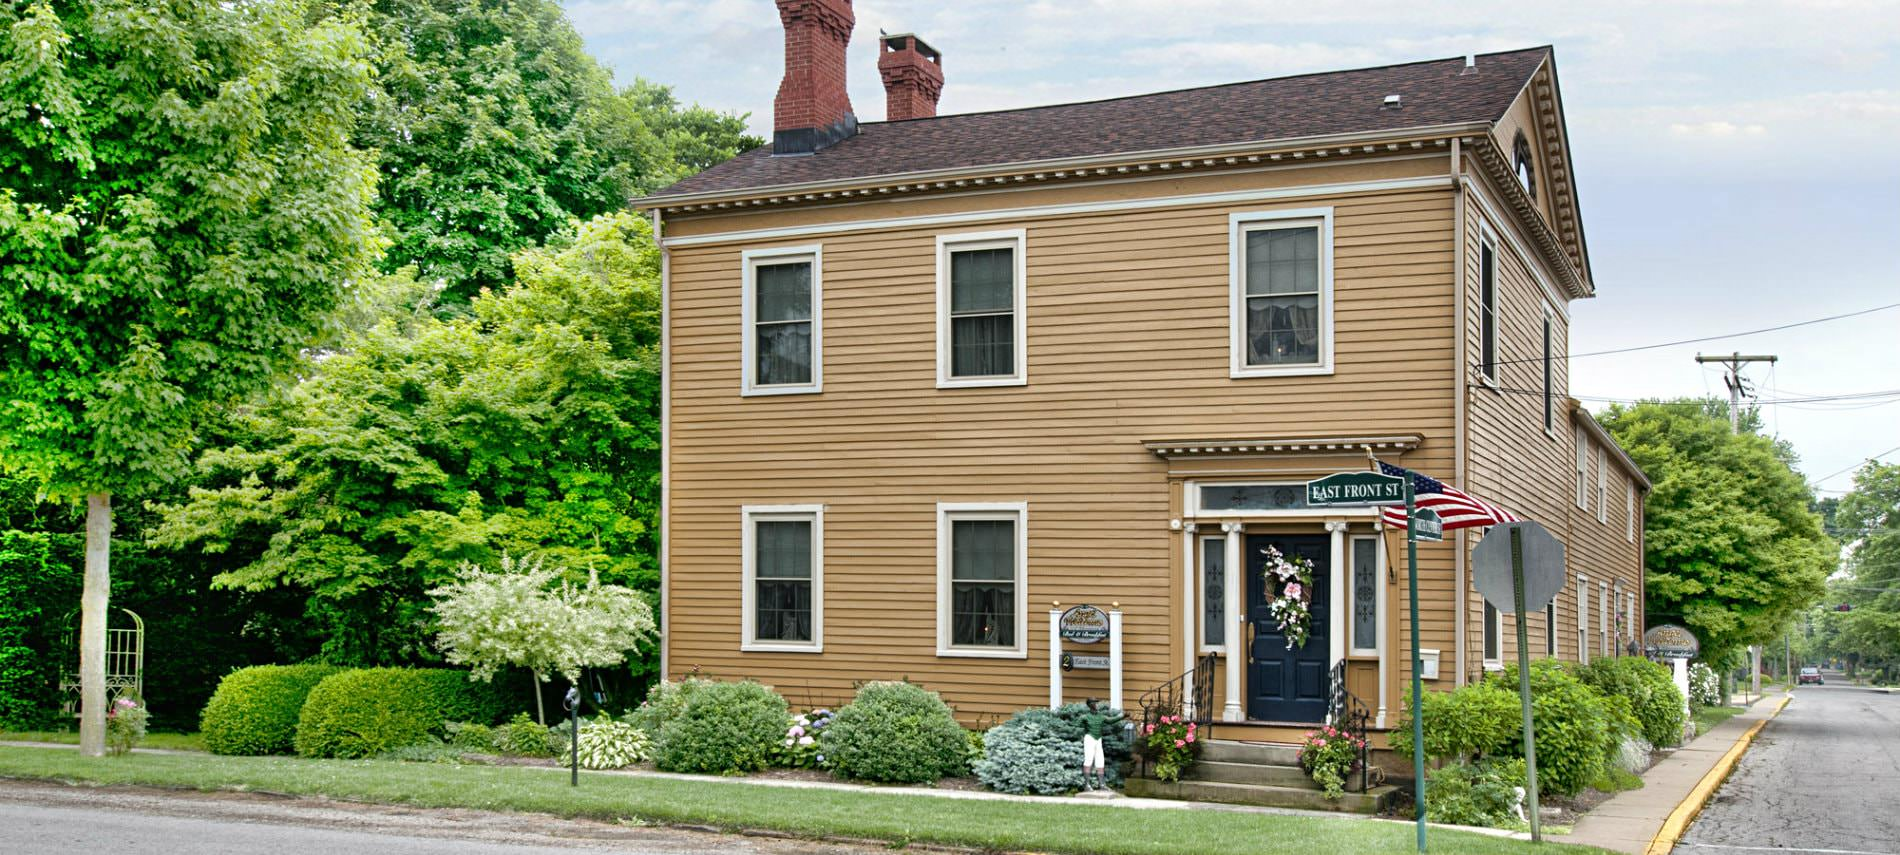 Exterior front view of B&B, tan siding, several windows, two brick chimneys surrounded by lush green trees and shrubs